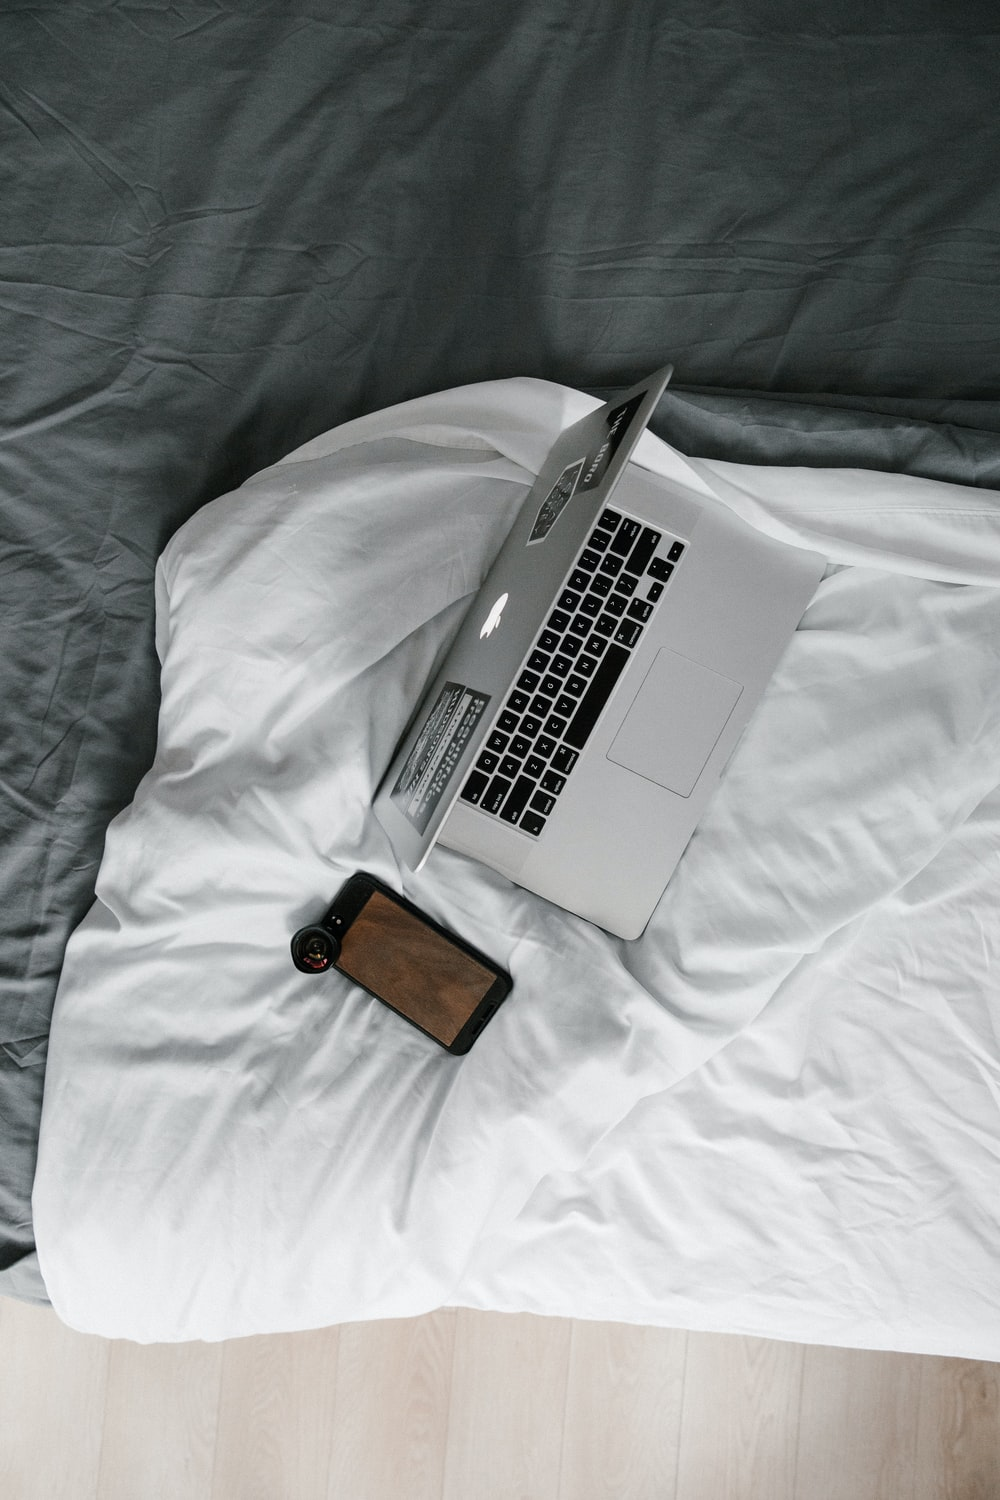 macbook pro beside brown leather wallet on white bed